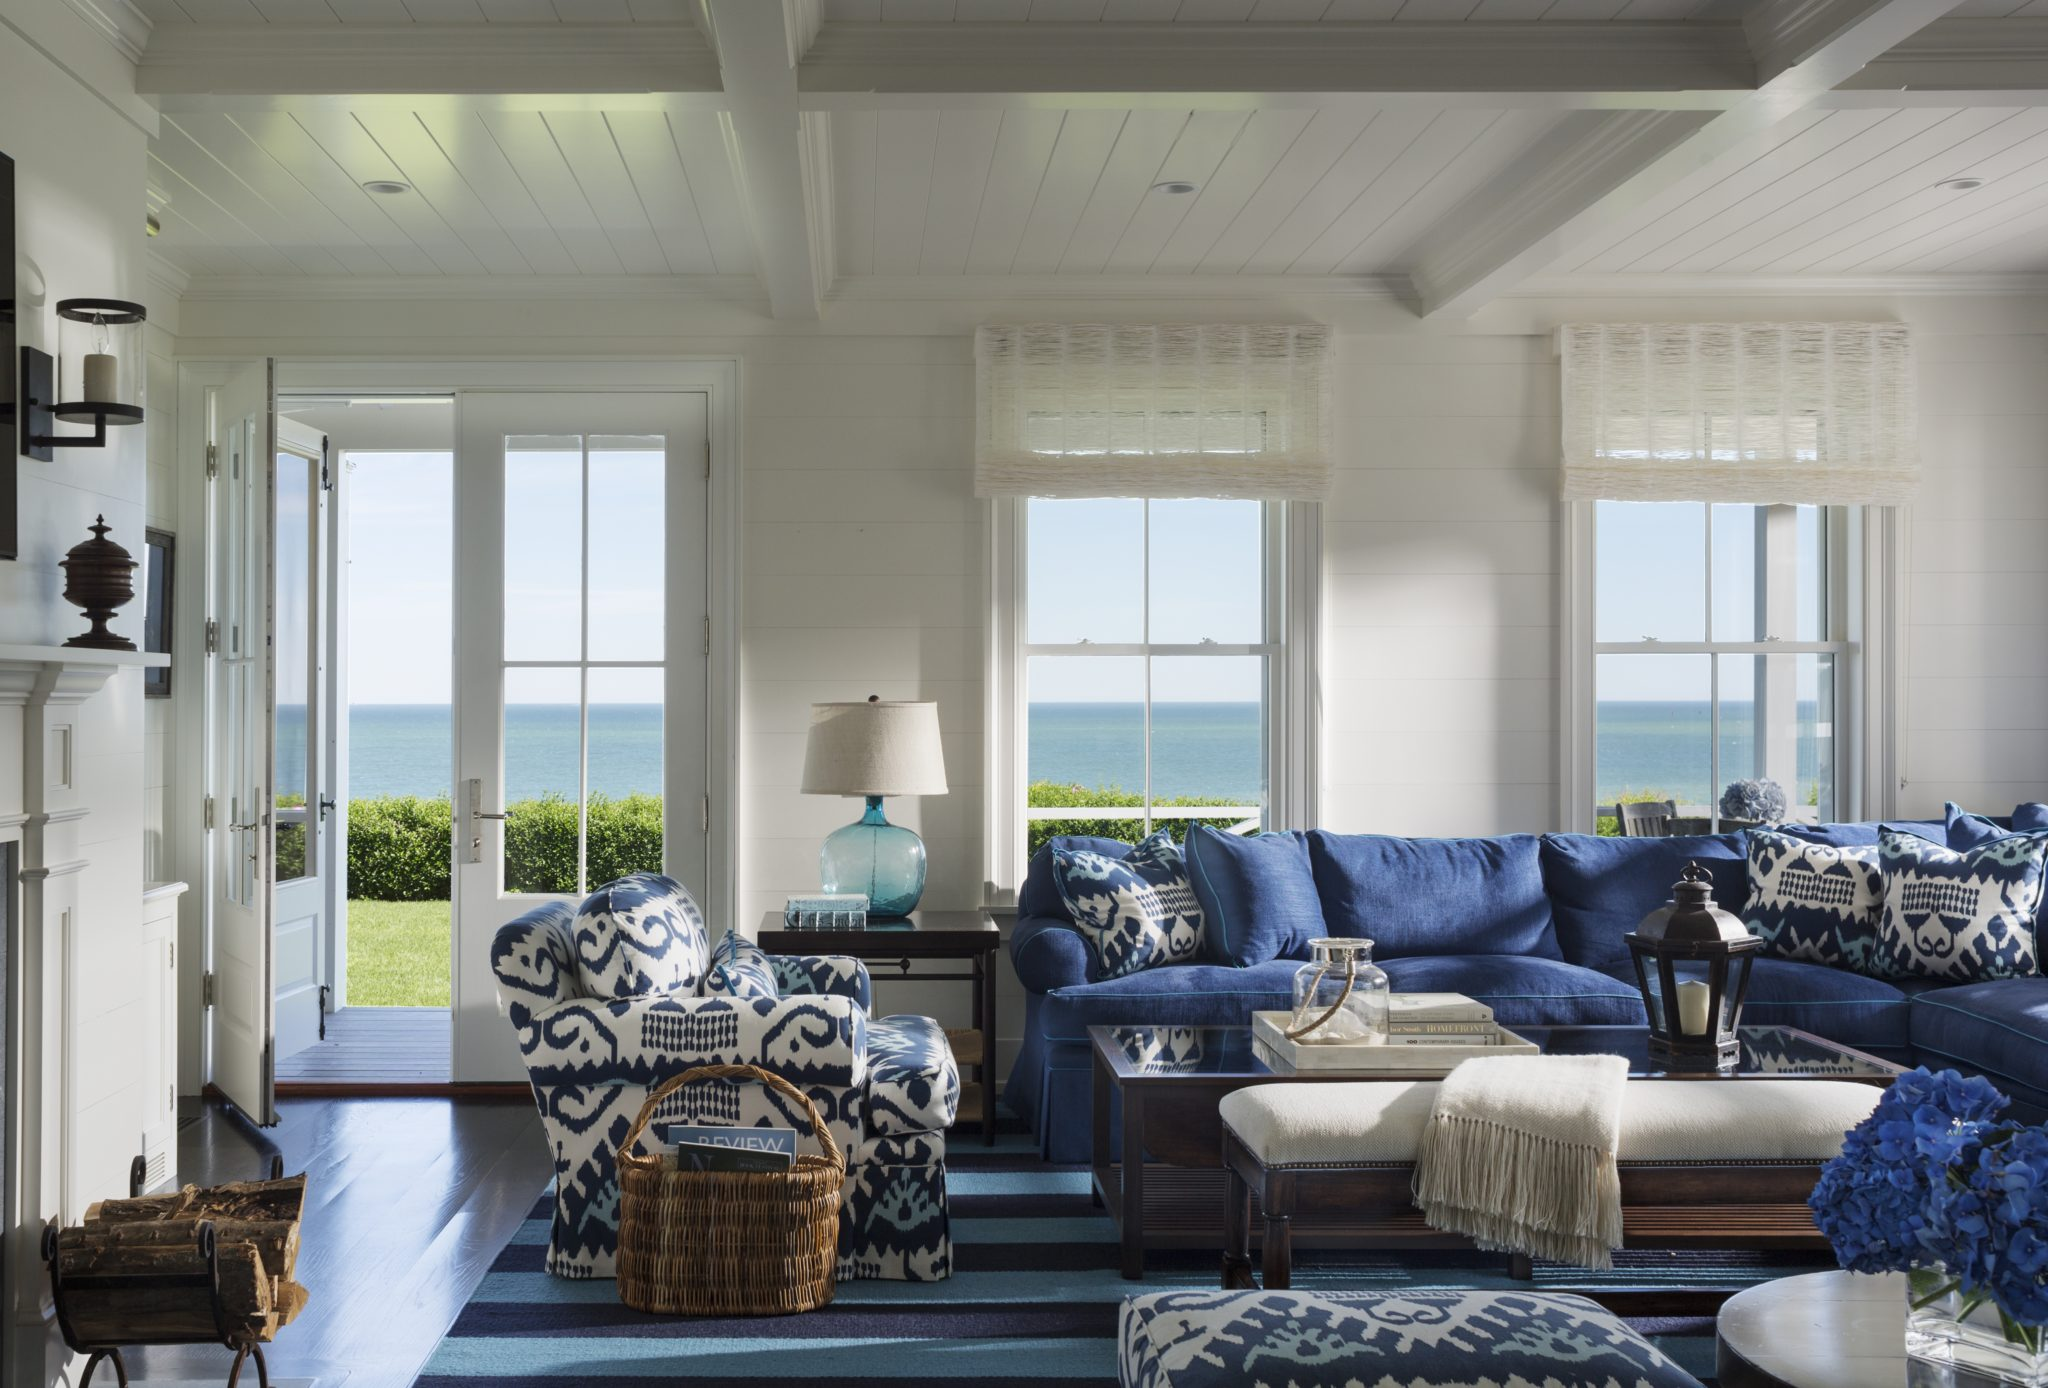 Spacious family room with blue and white ikat upholstery and crisp white walls by SLC Interiors